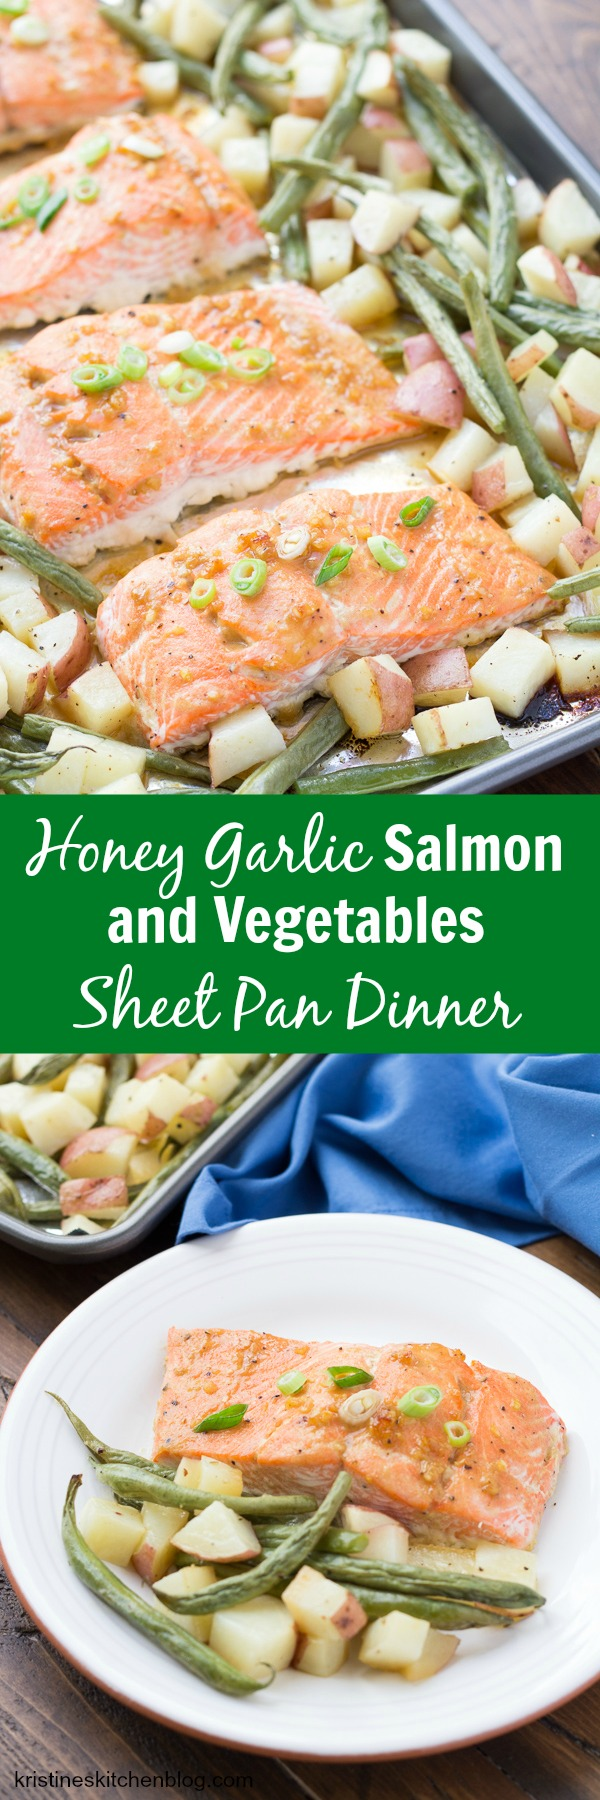 30 Minute Honey Garlic Salmon and Vegetables Sheet Pan Dinner. An easy one-pan weeknight meal that you can customize to your liking!